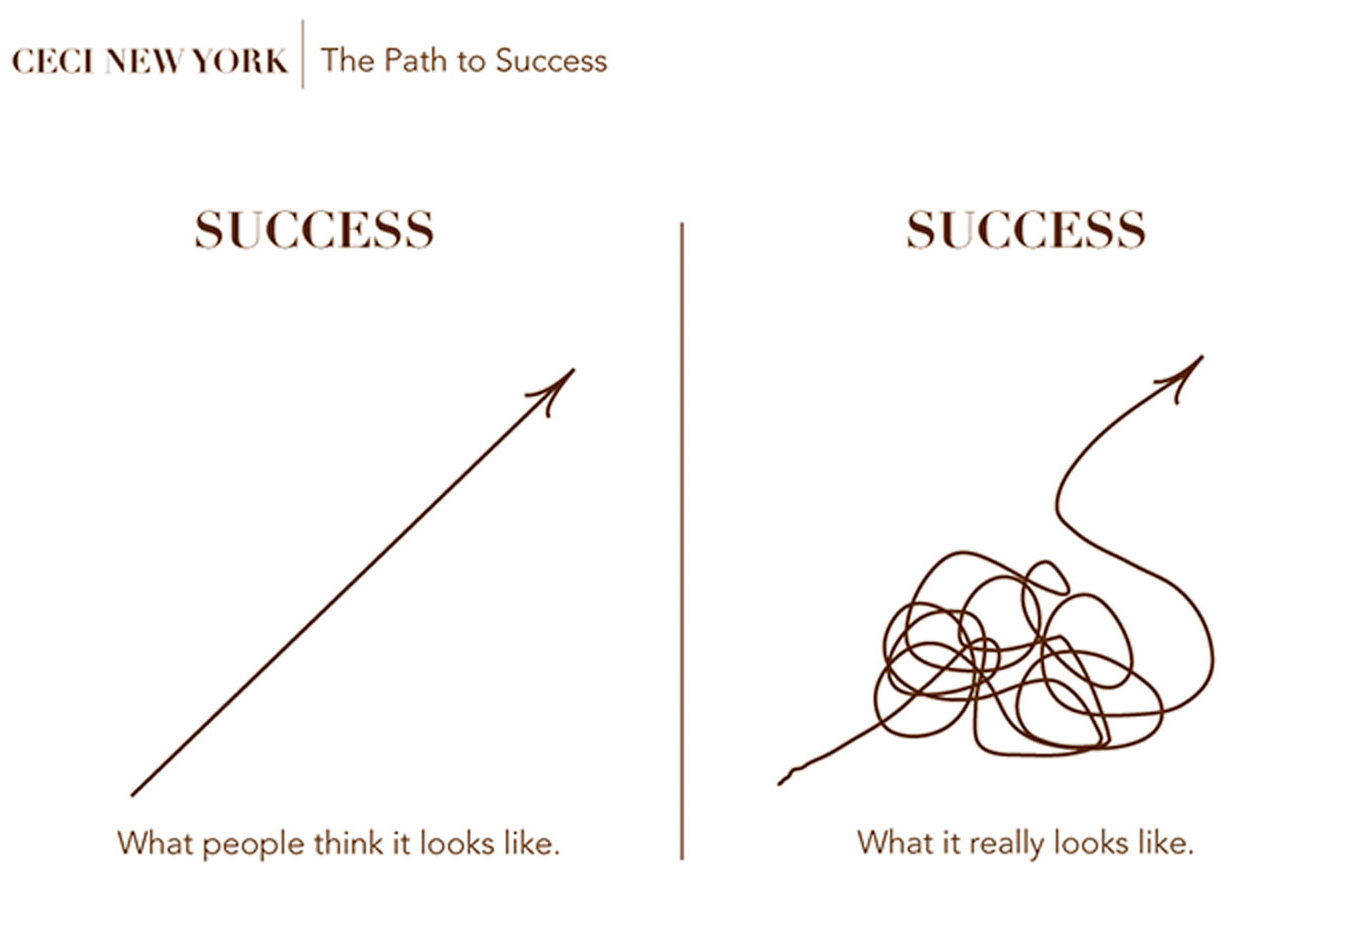 The Path to Success - What people think it looks like. What it really looks like.